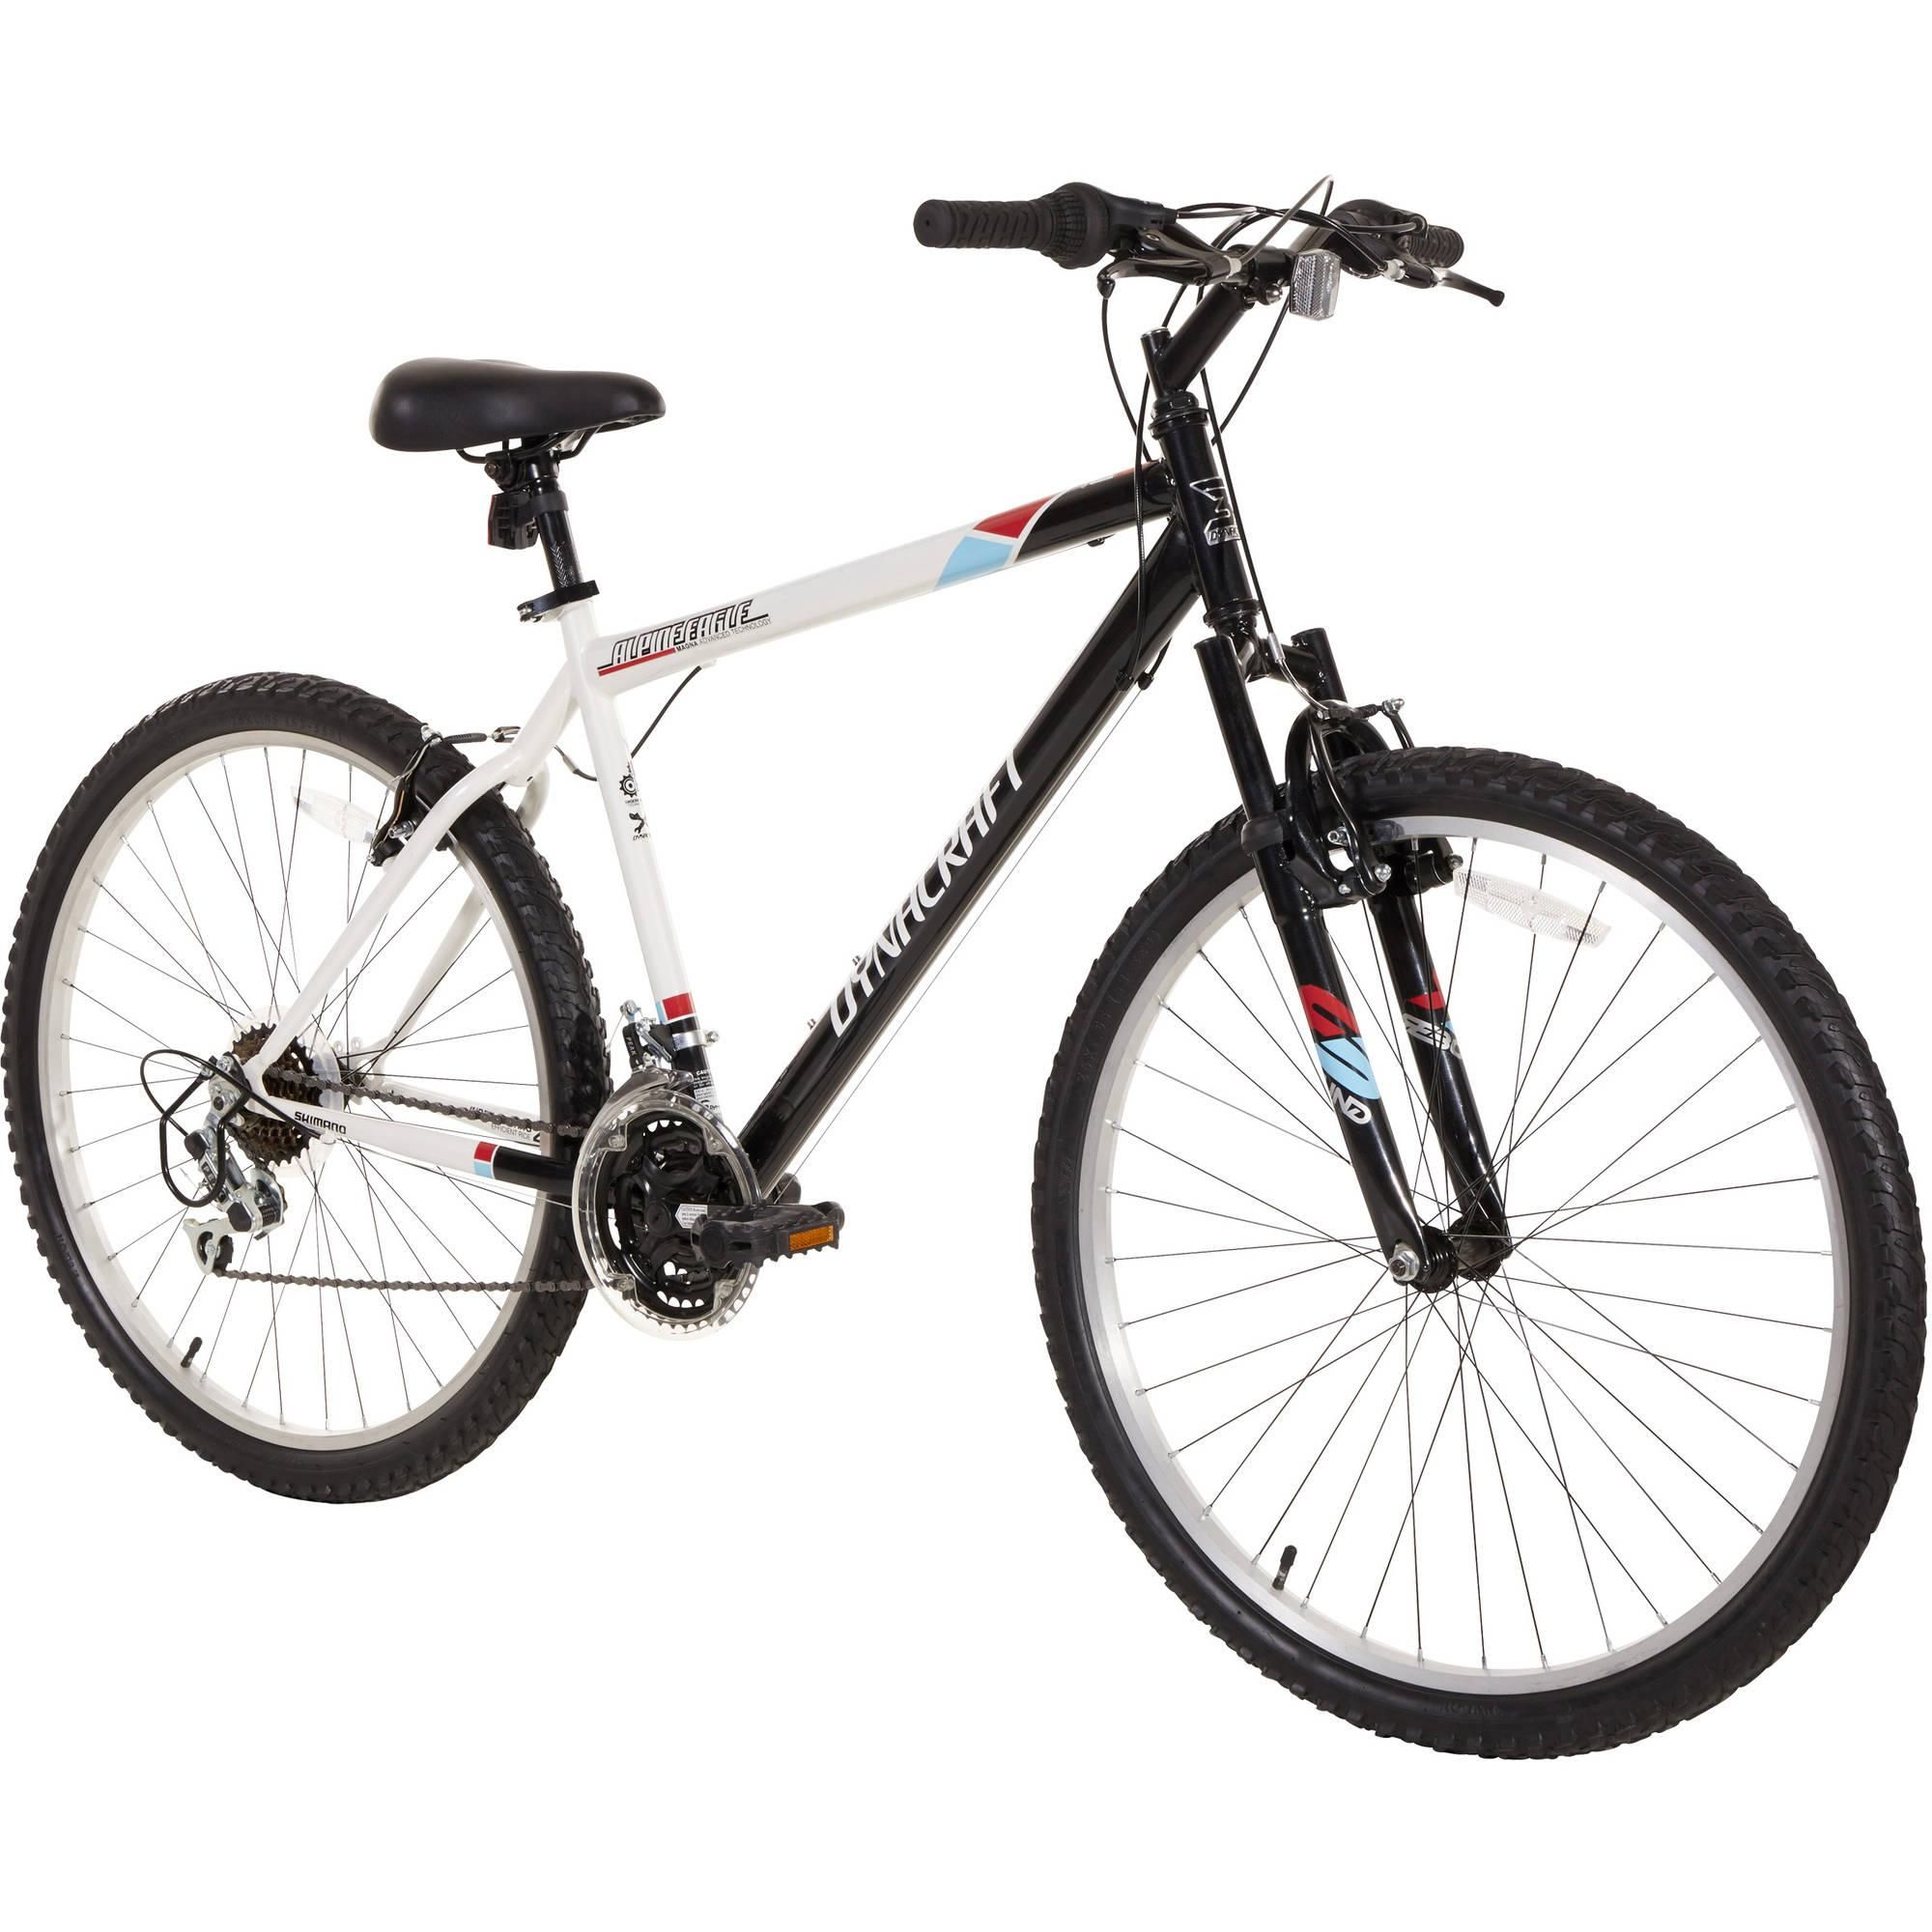 Looking for a low cost but good quality full suspension